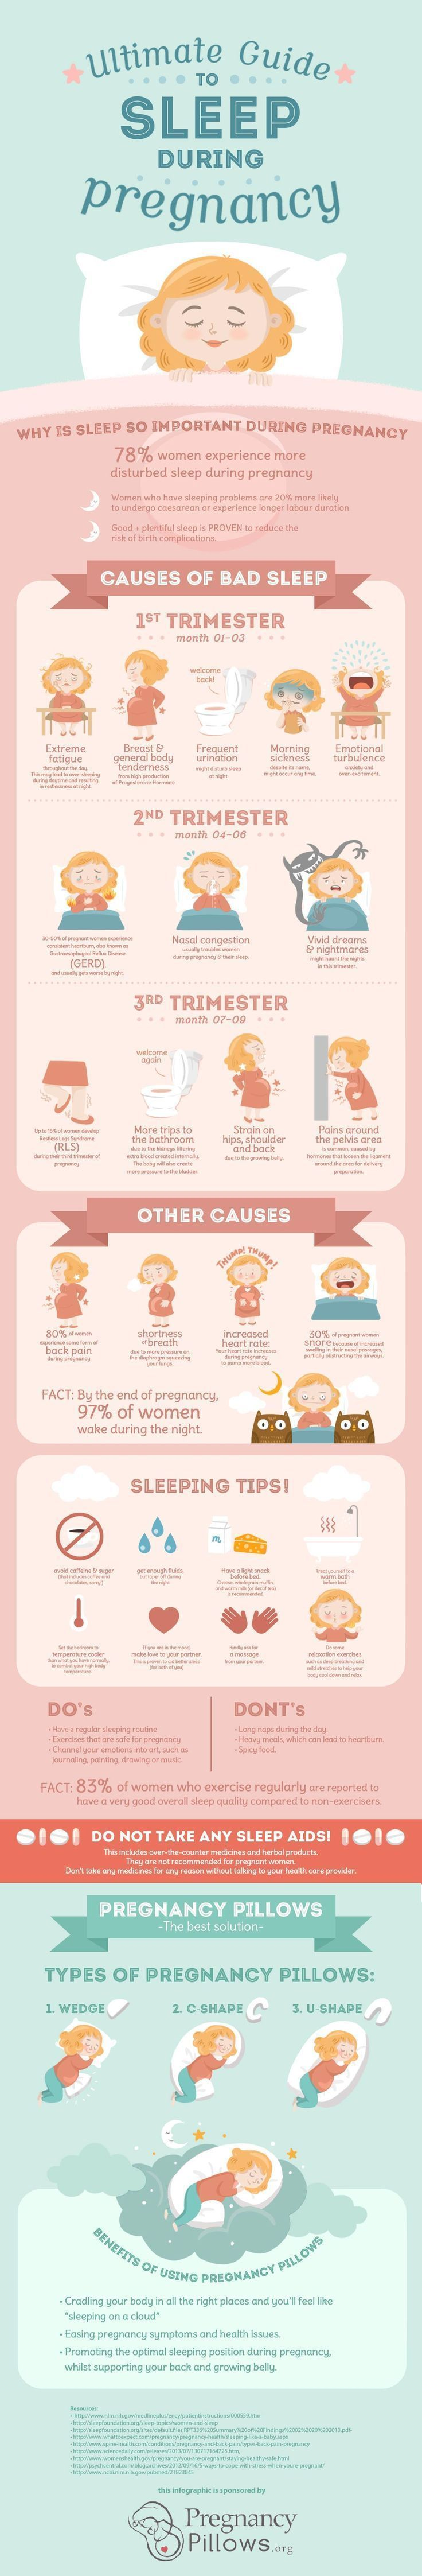 Best Way to Sleep While Pregnant Try This Tip Best Way to Sleep While Pregnant Sleeping comfortably at night while pregnant can become increasingly difficult Find out wha...